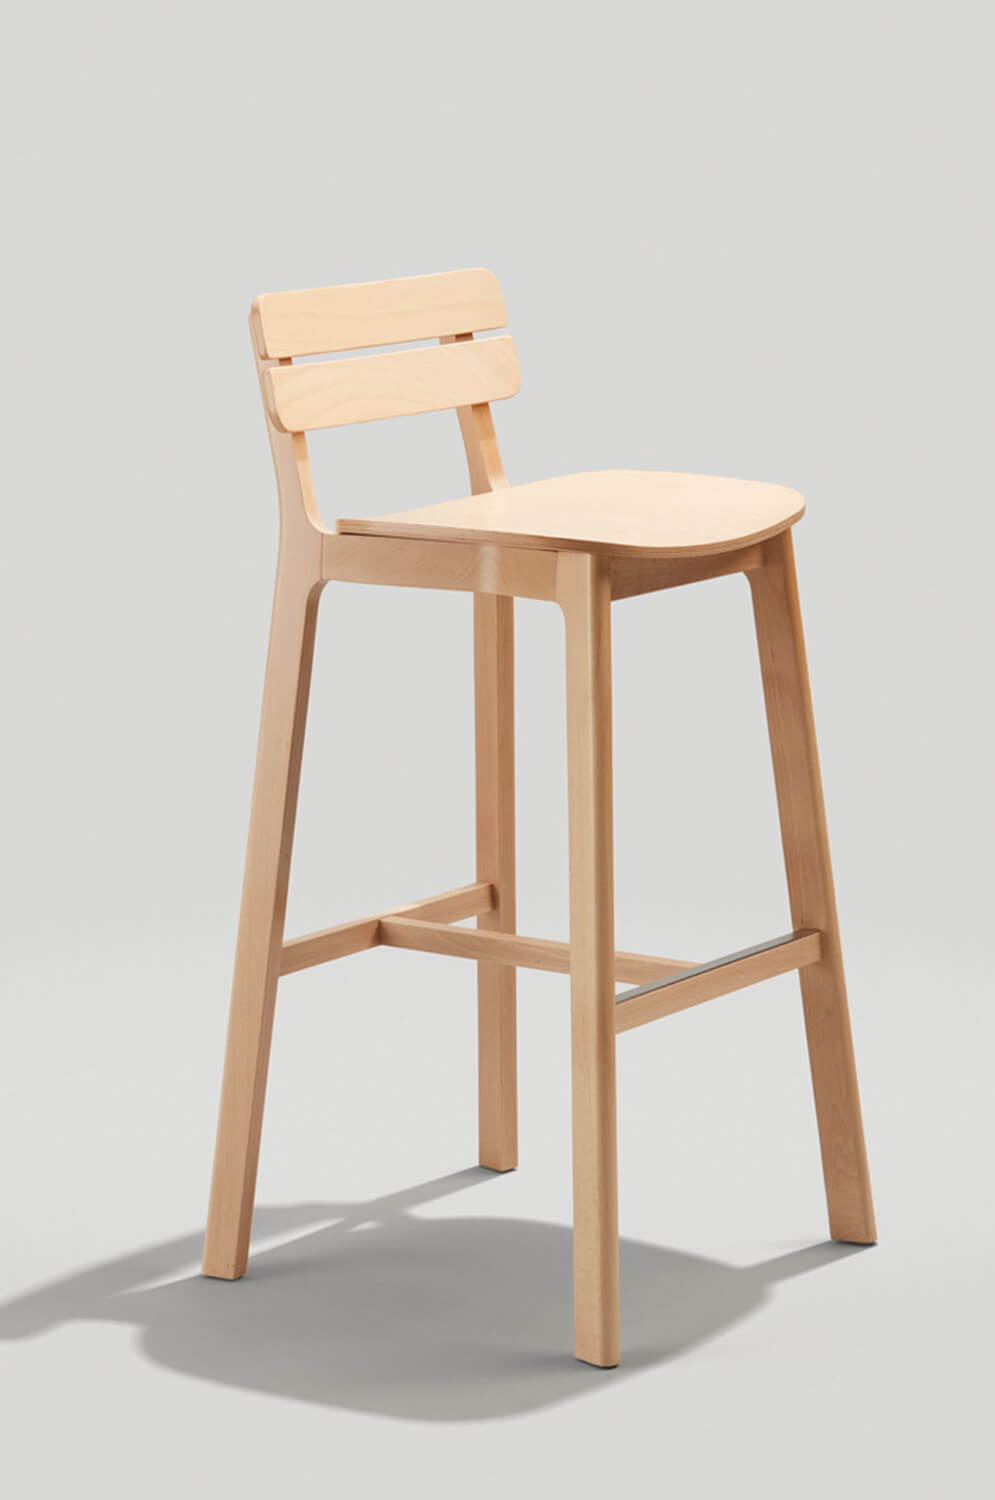 Surprising Brooke Low Back Wooden Bar Stool Gmtry Best Dining Table And Chair Ideas Images Gmtryco